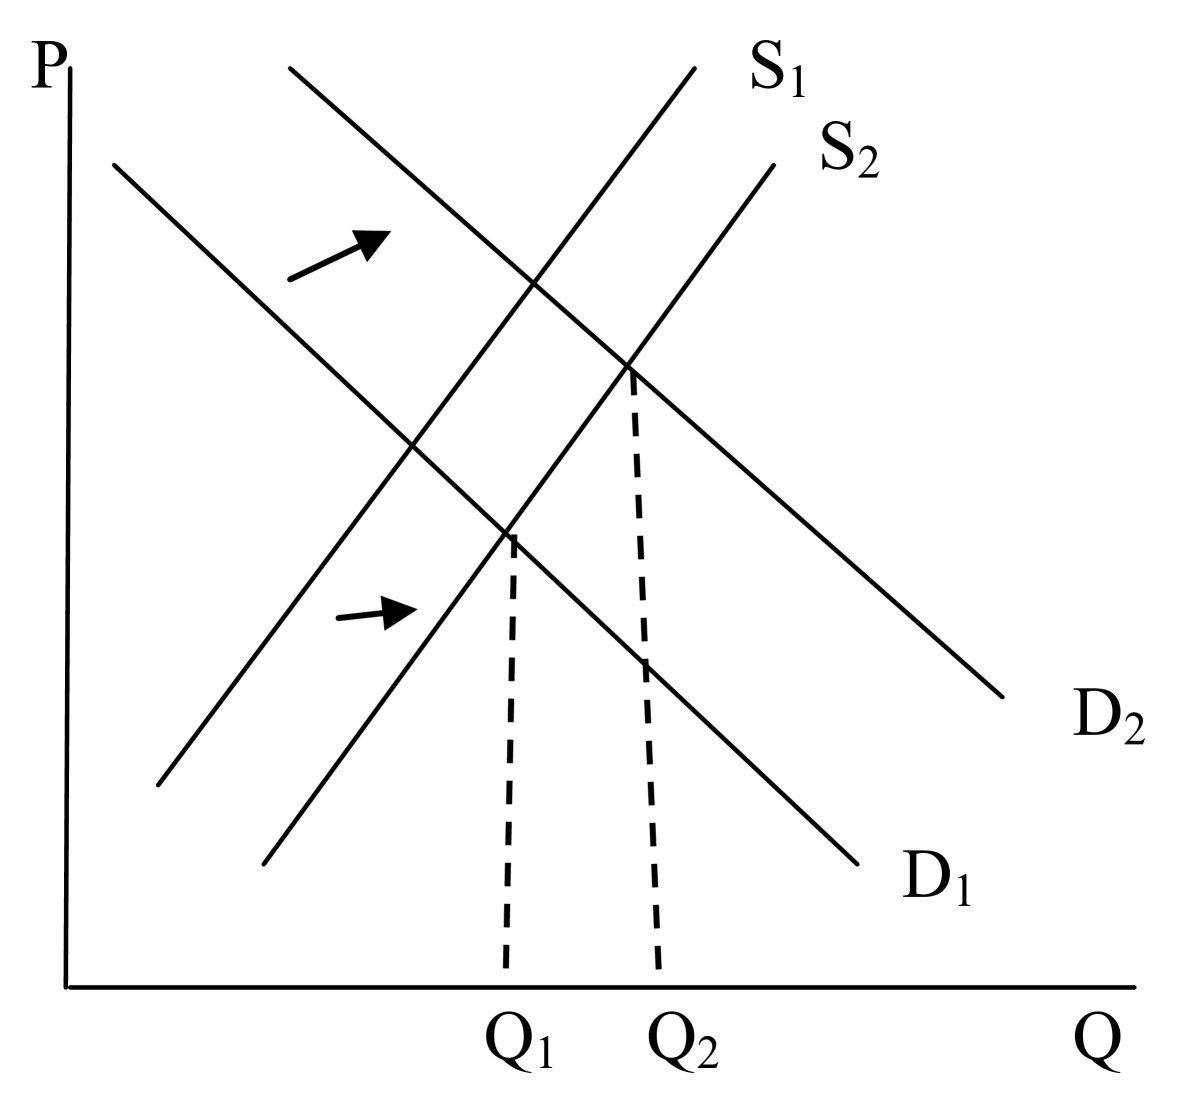 http://static-content.springer.com/image/art%3A10.1186%2F2191-1991-1-13/MediaObjects/13561_2011_Article_12_Fig1_HTML.jpg